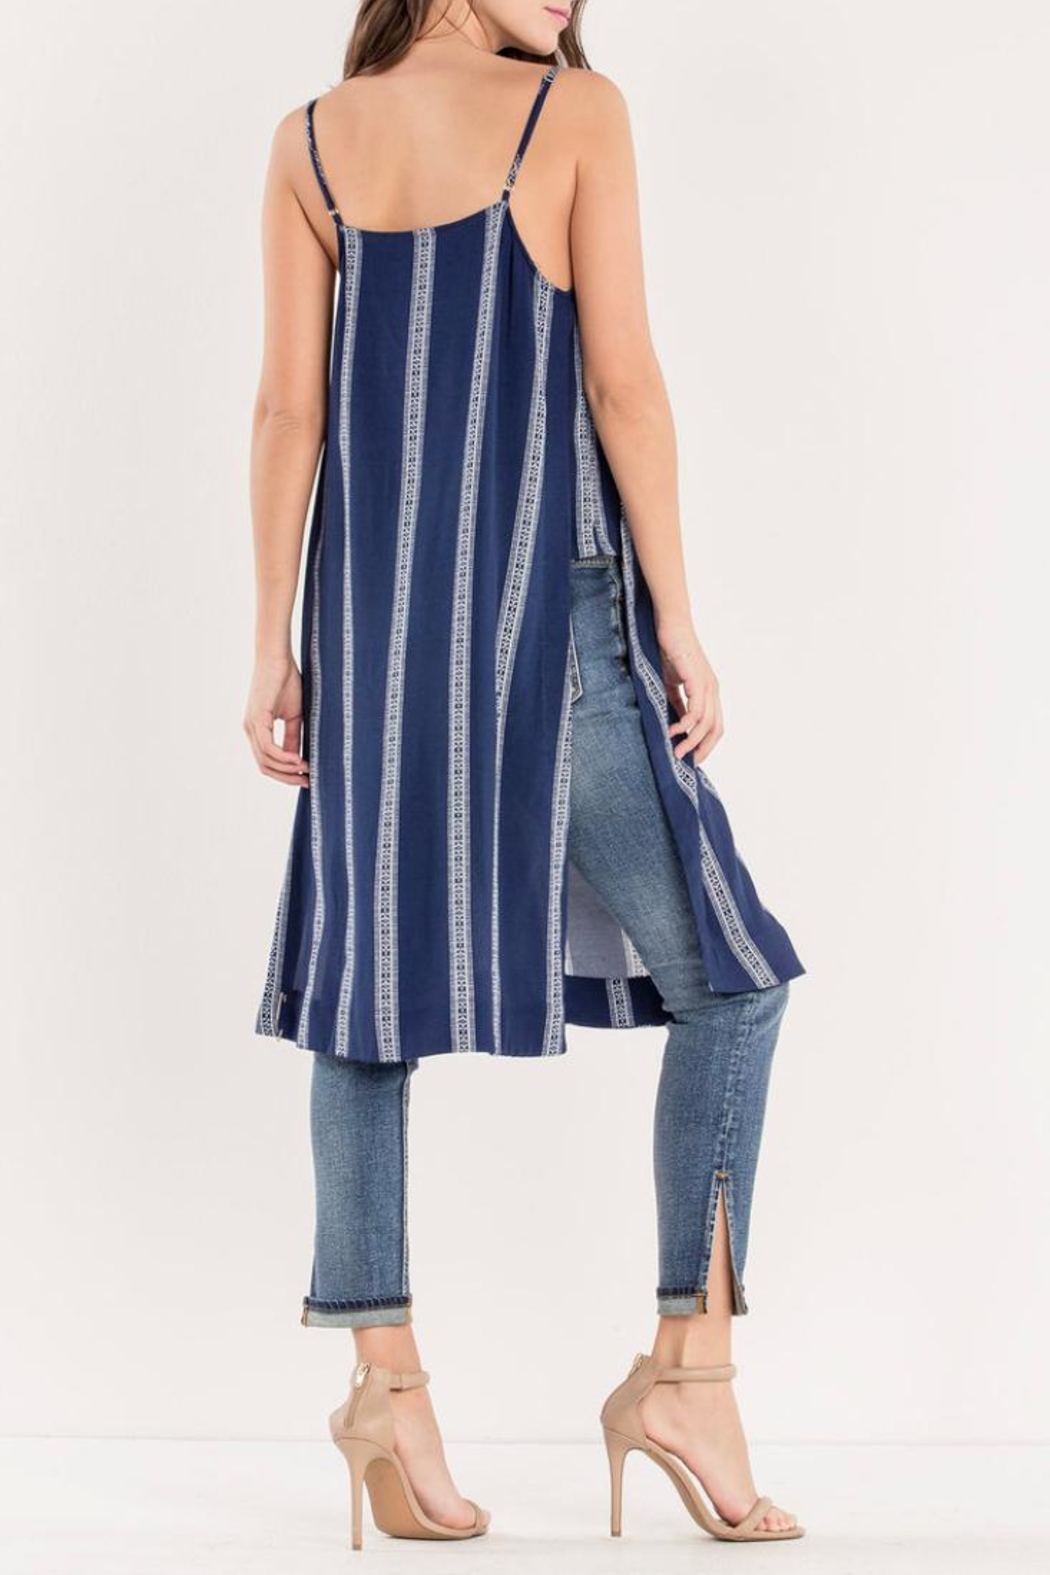 Miss Me Navy Striped Maxi-Tank - Back Cropped Image